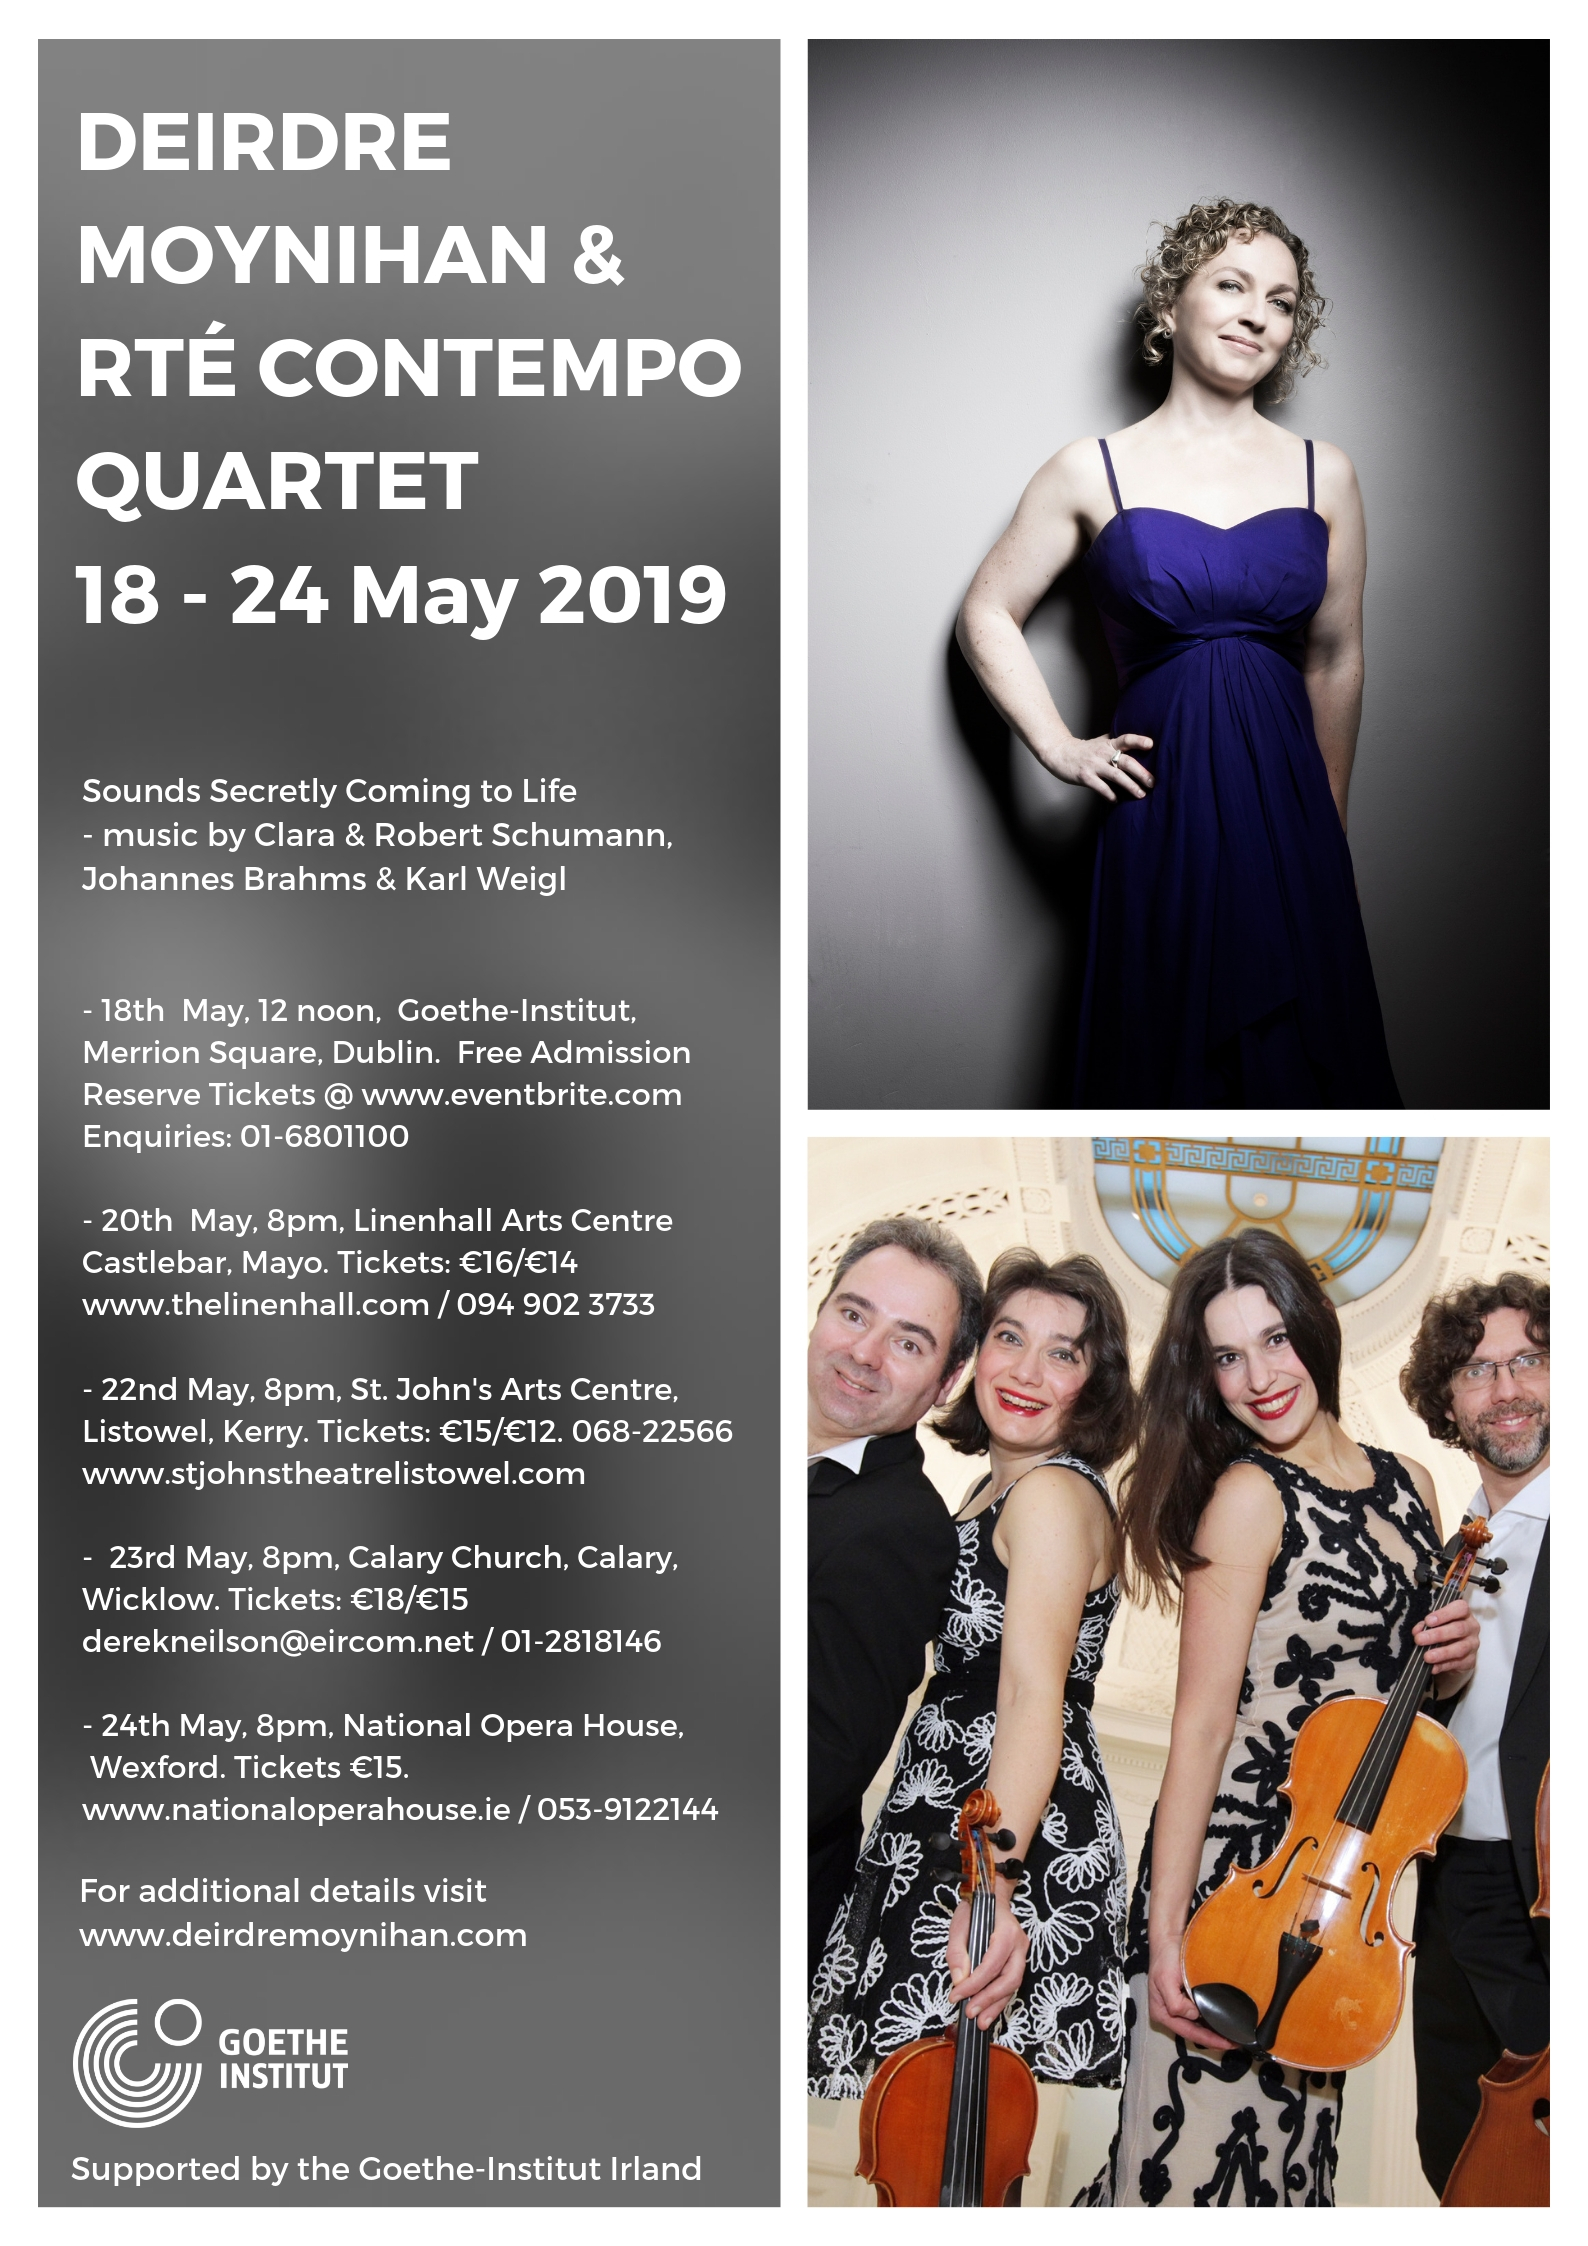 May 2019 tour - Deirdre Moynihan  RTE Contempo Quartet